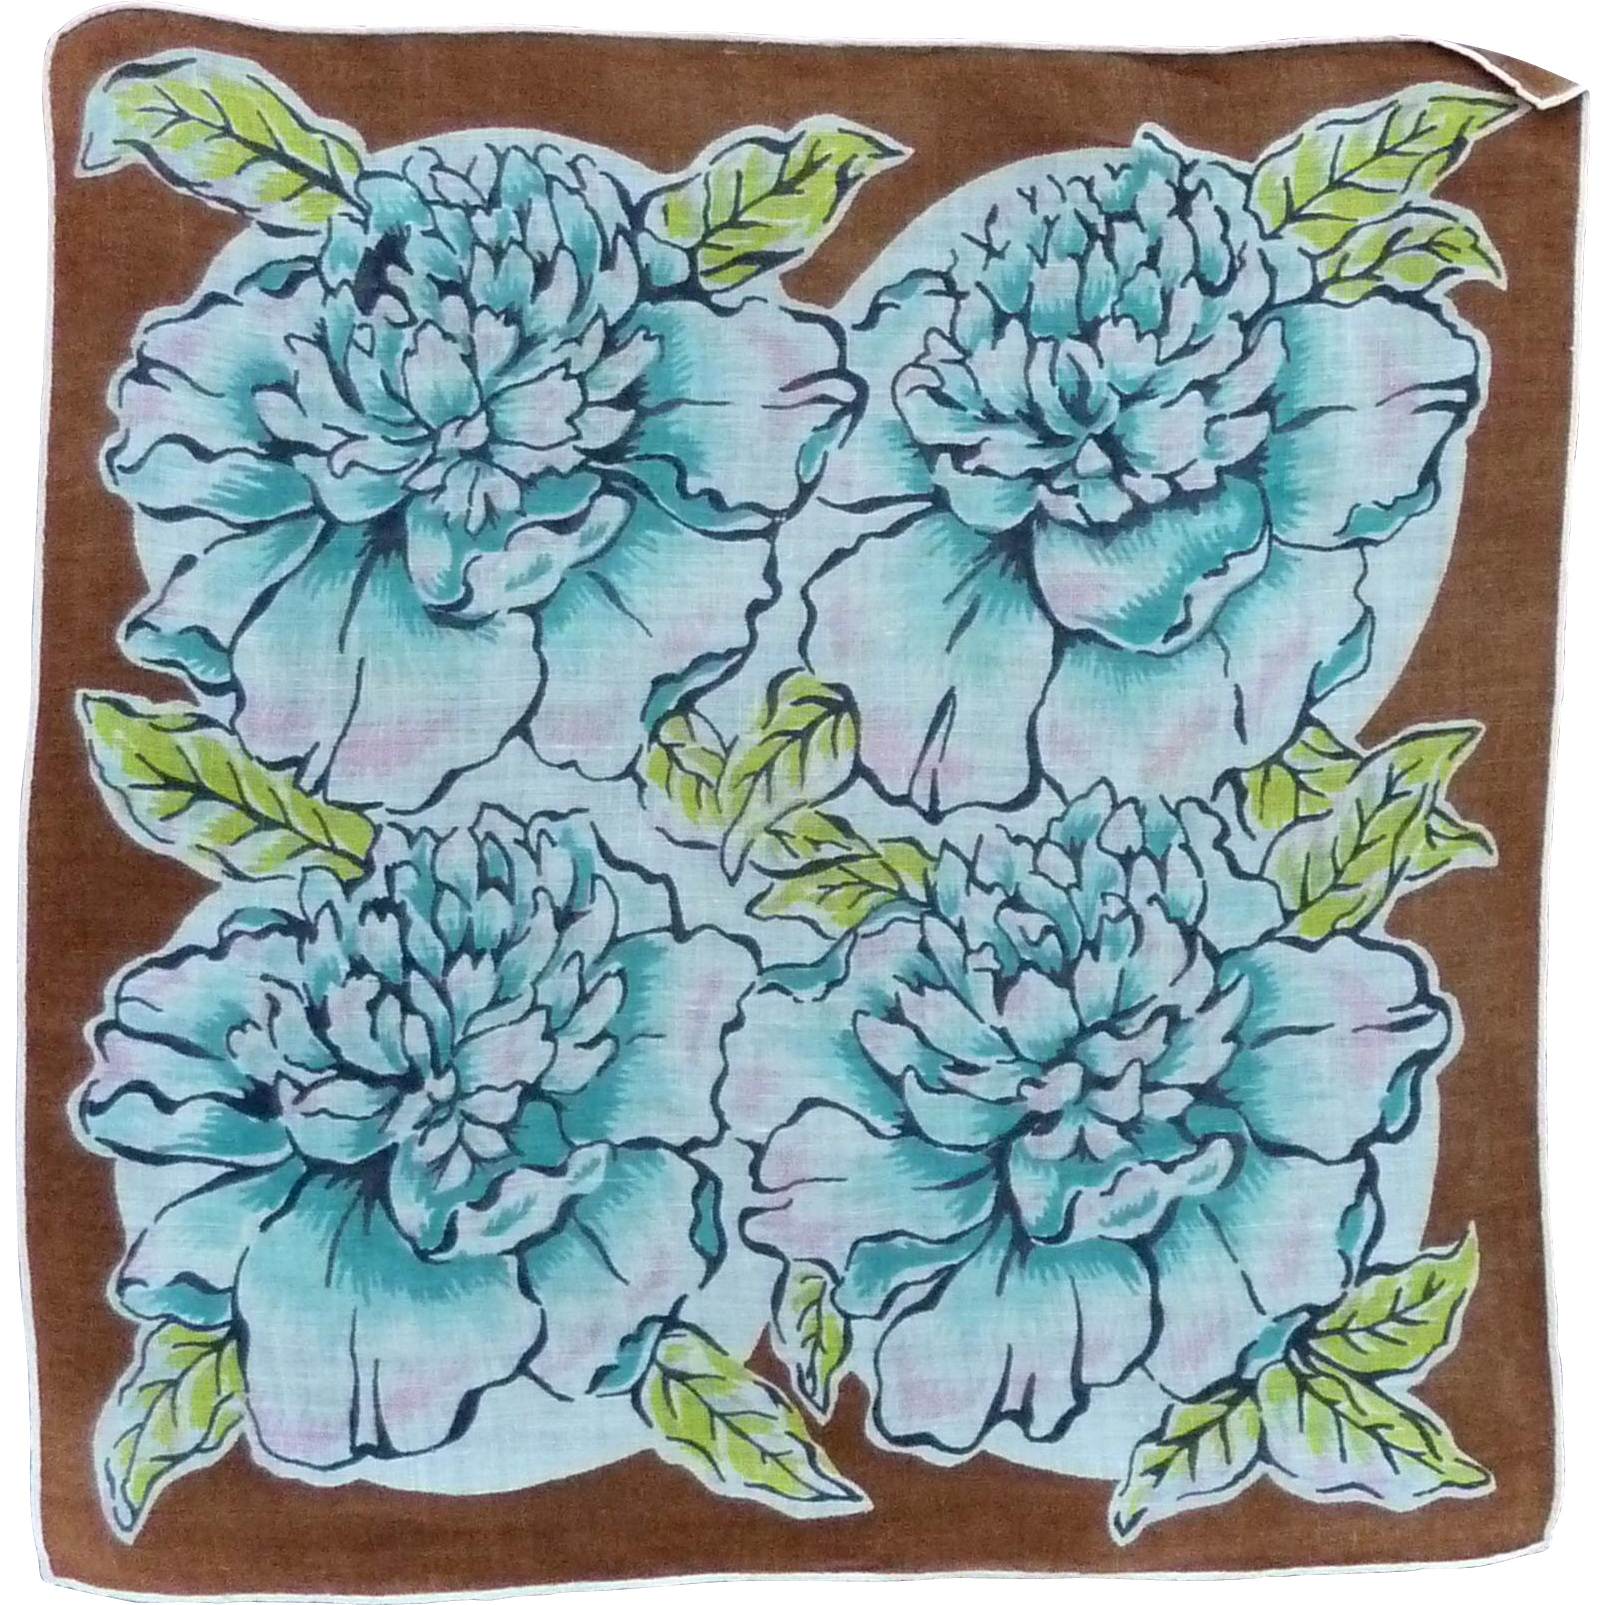 Beautiful Aqua Blue Flowers on Brown Cotton Handkerchief